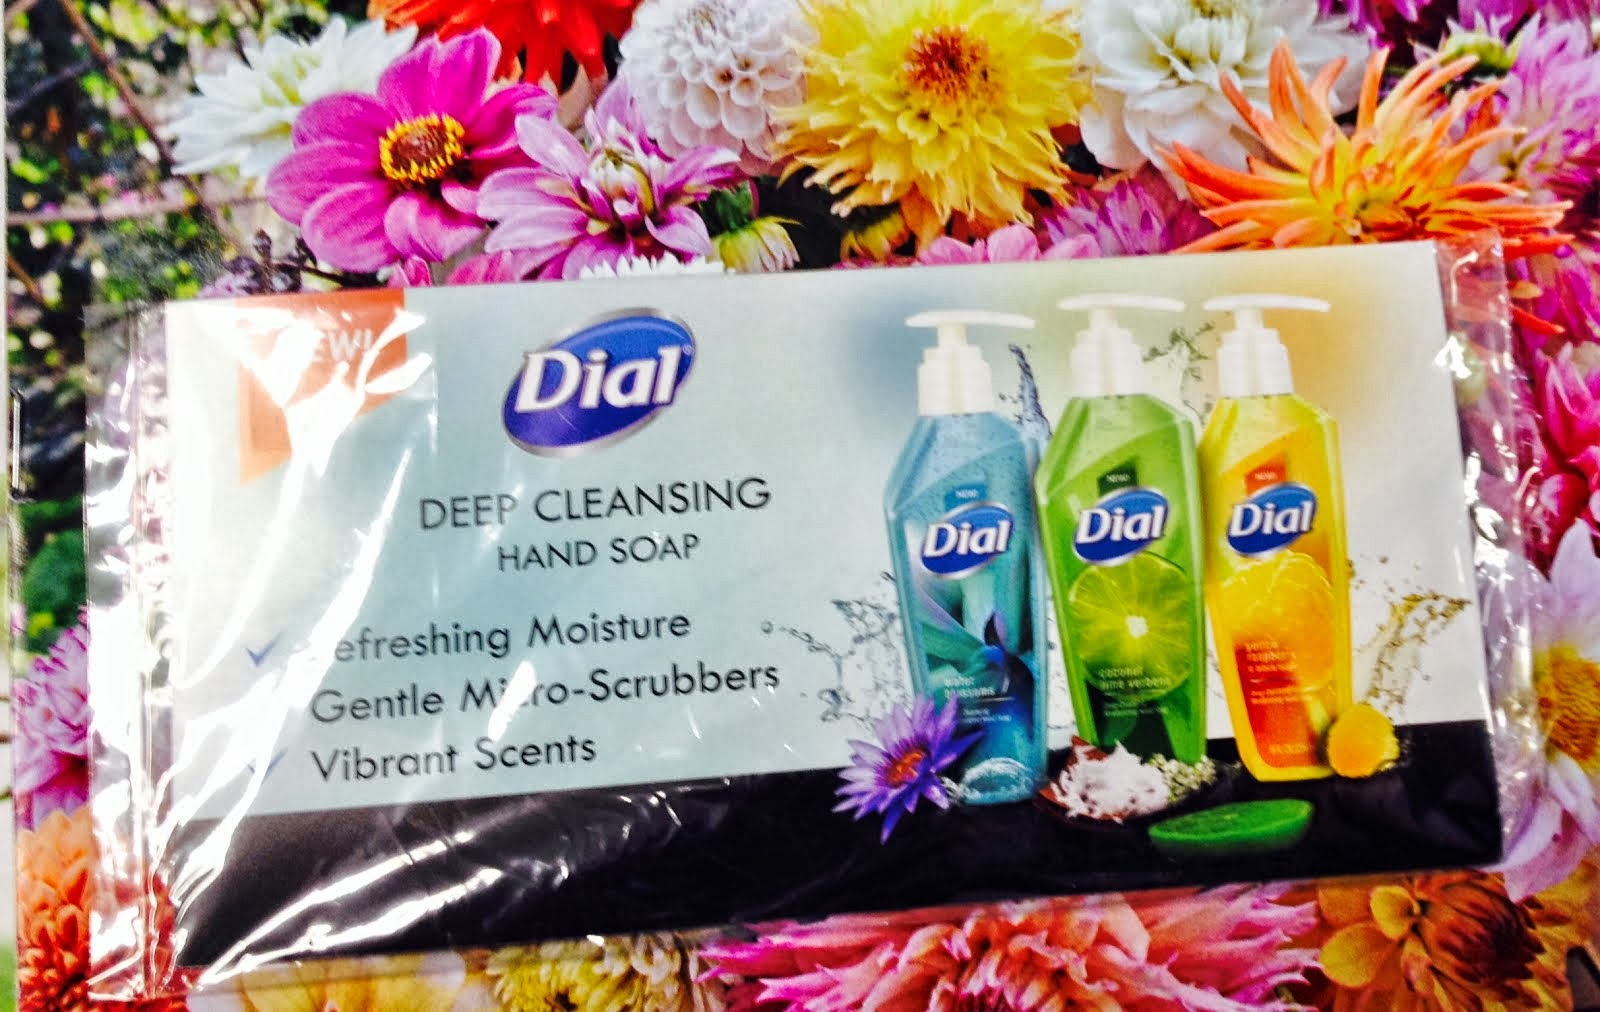 Dial Deep Cleansing Hand Soap Giveaway